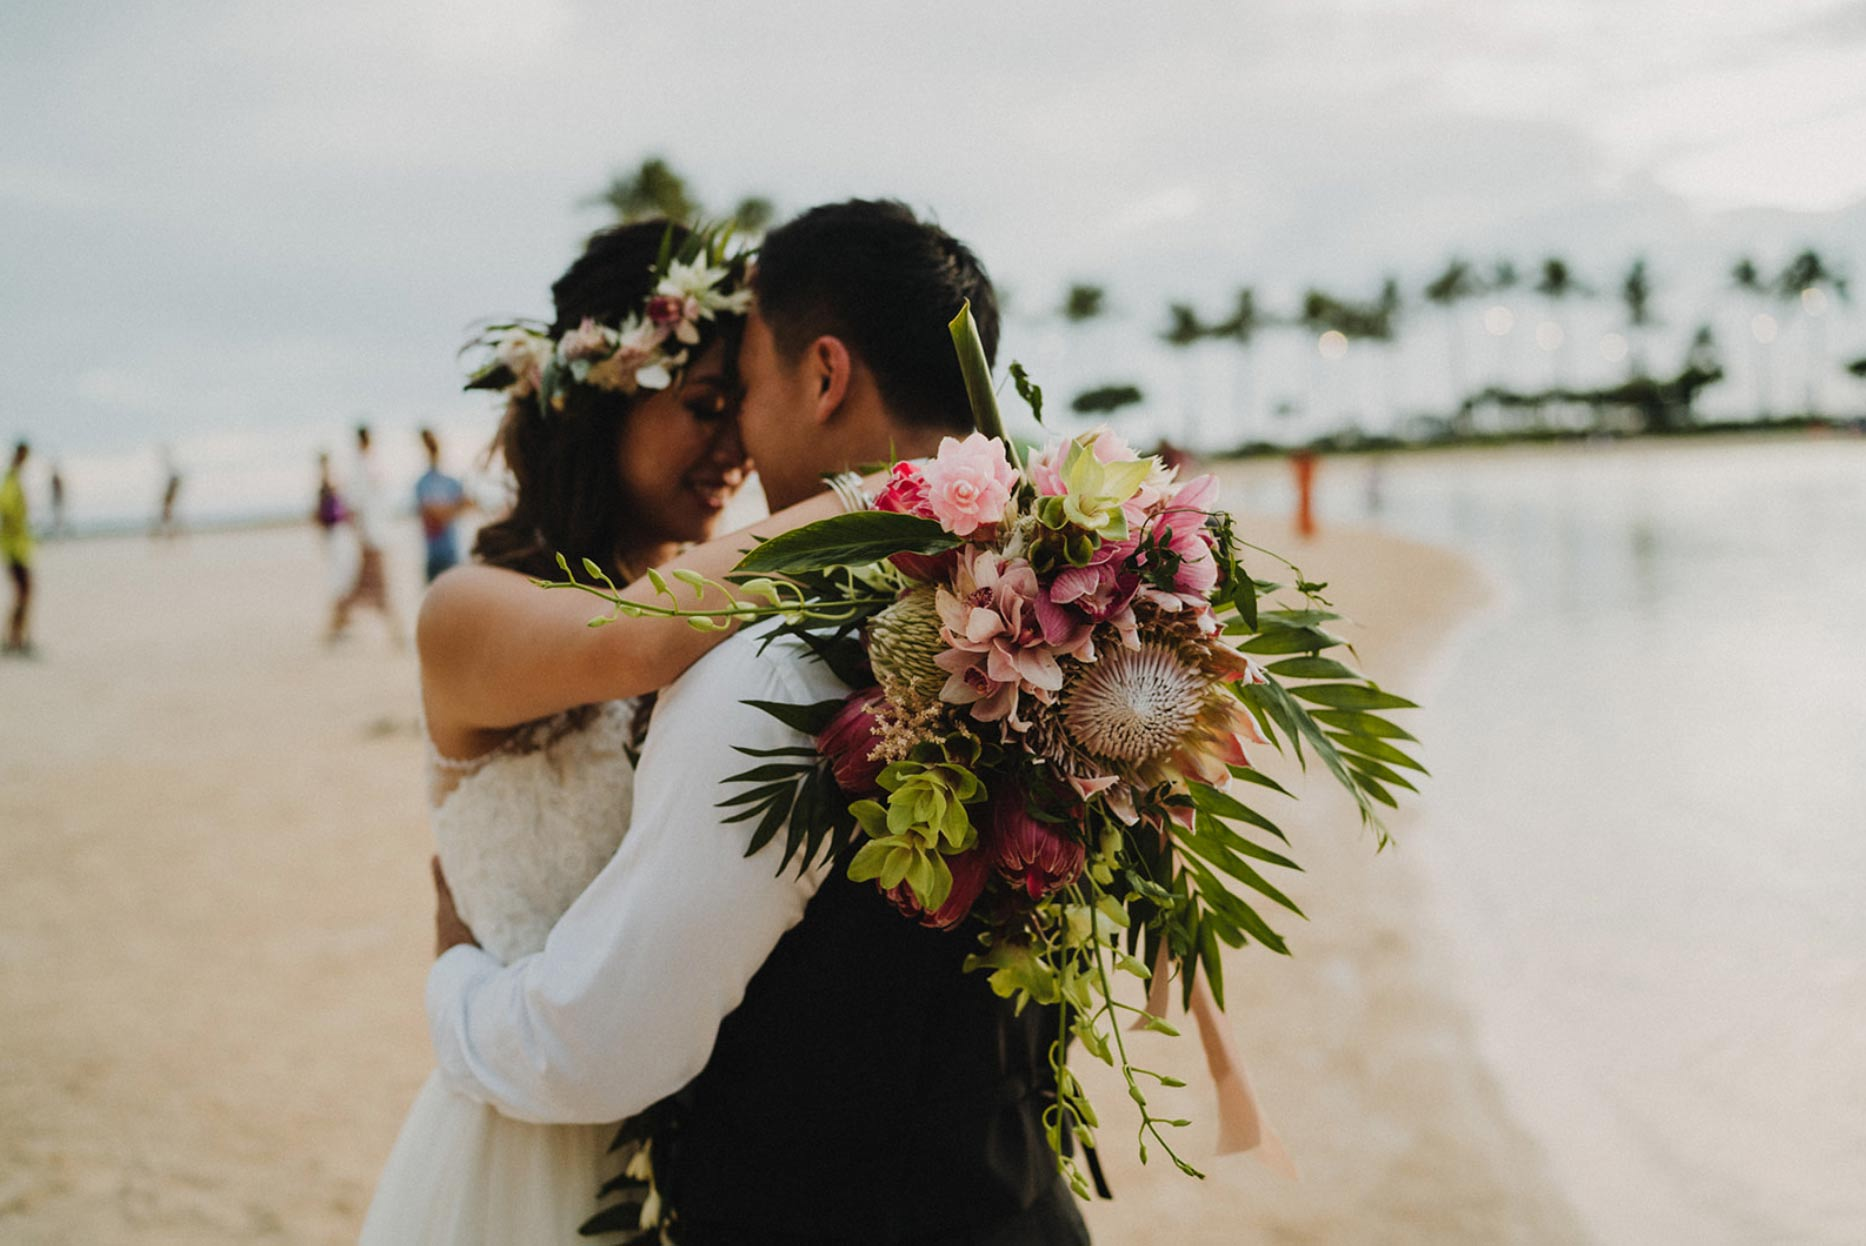 Bride and groom embracing on a beach